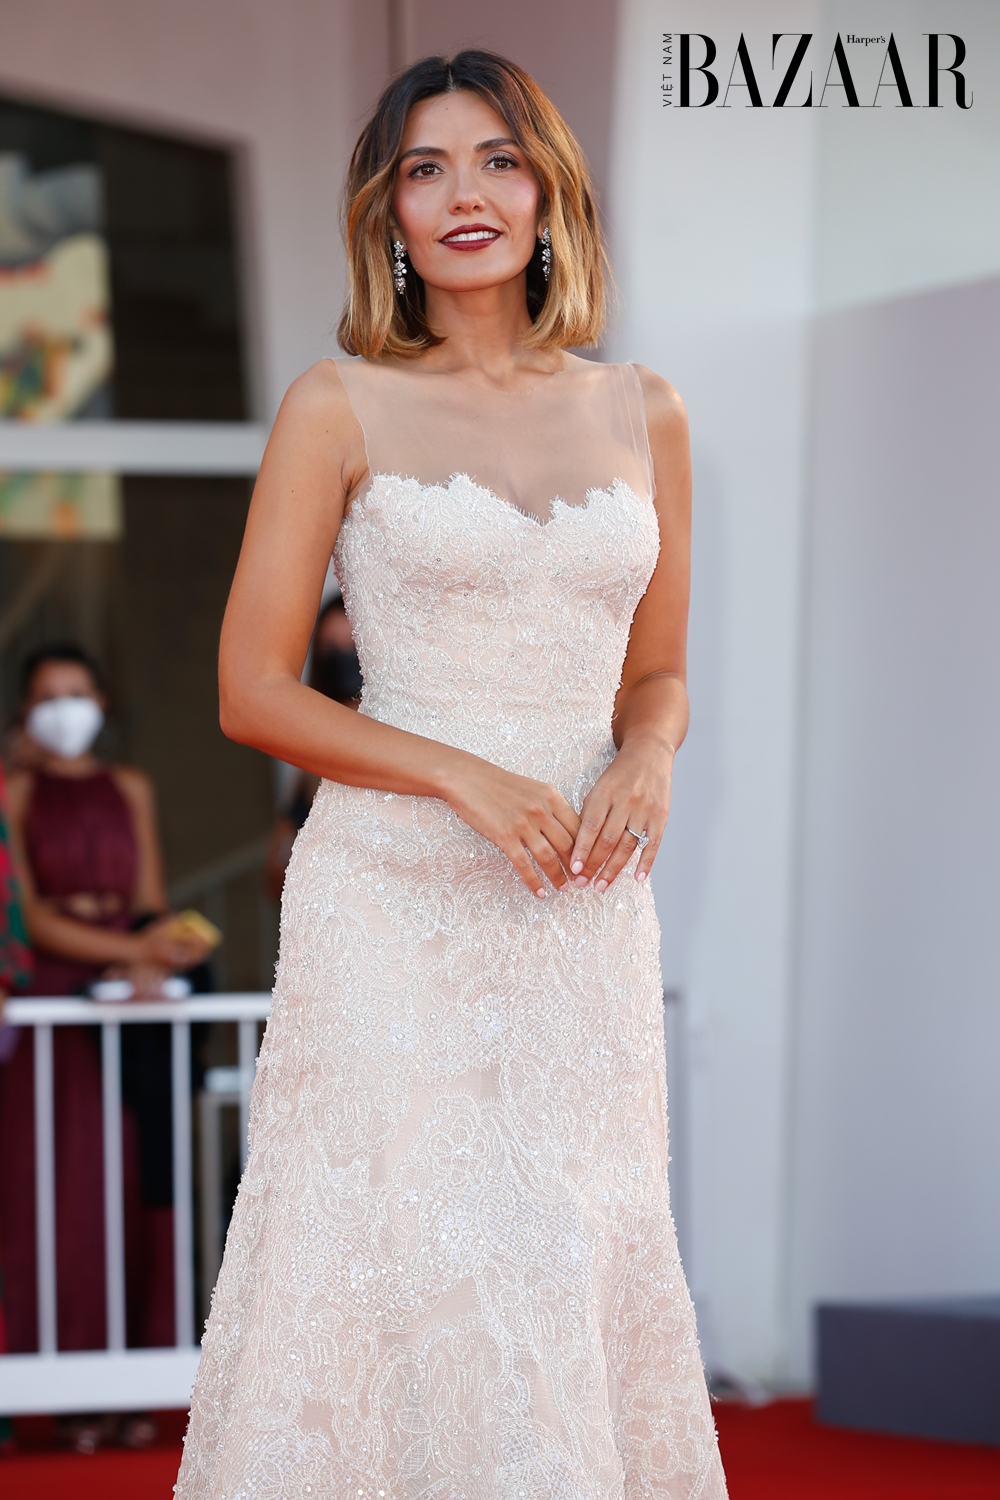 BZ-Cartier-Celebrities-in-Cartier-at-the-78th-Venice-Film-Festival-Serena-Rossi